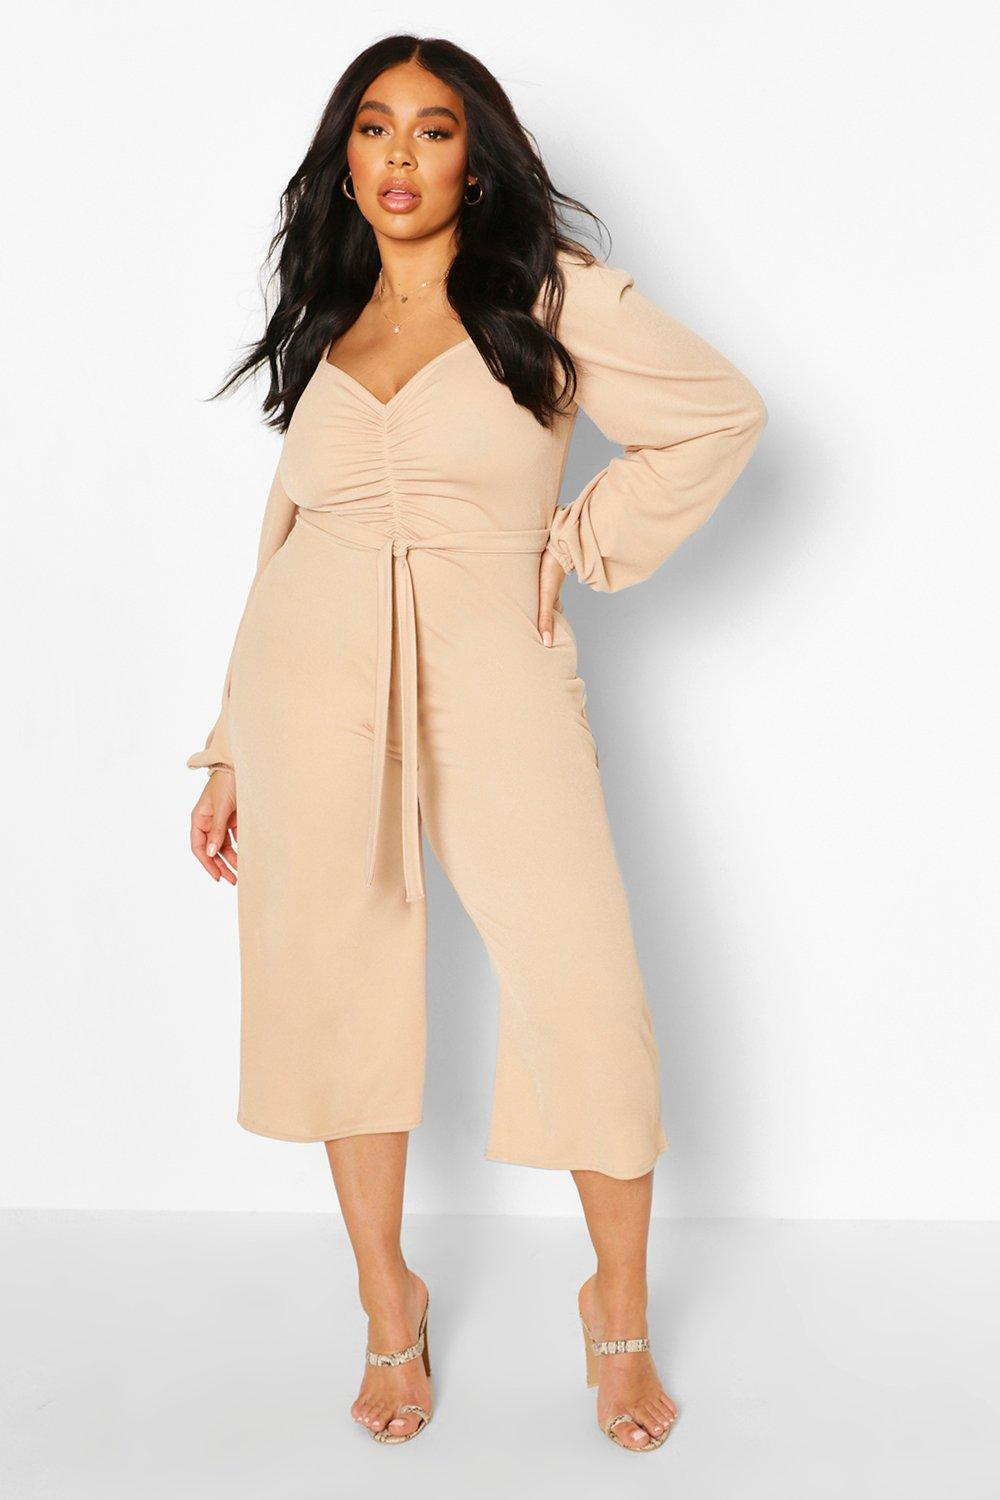 boohoo Womens Plus Puff Sleeve Belted Jumpsuit - Beige - 20, Beige